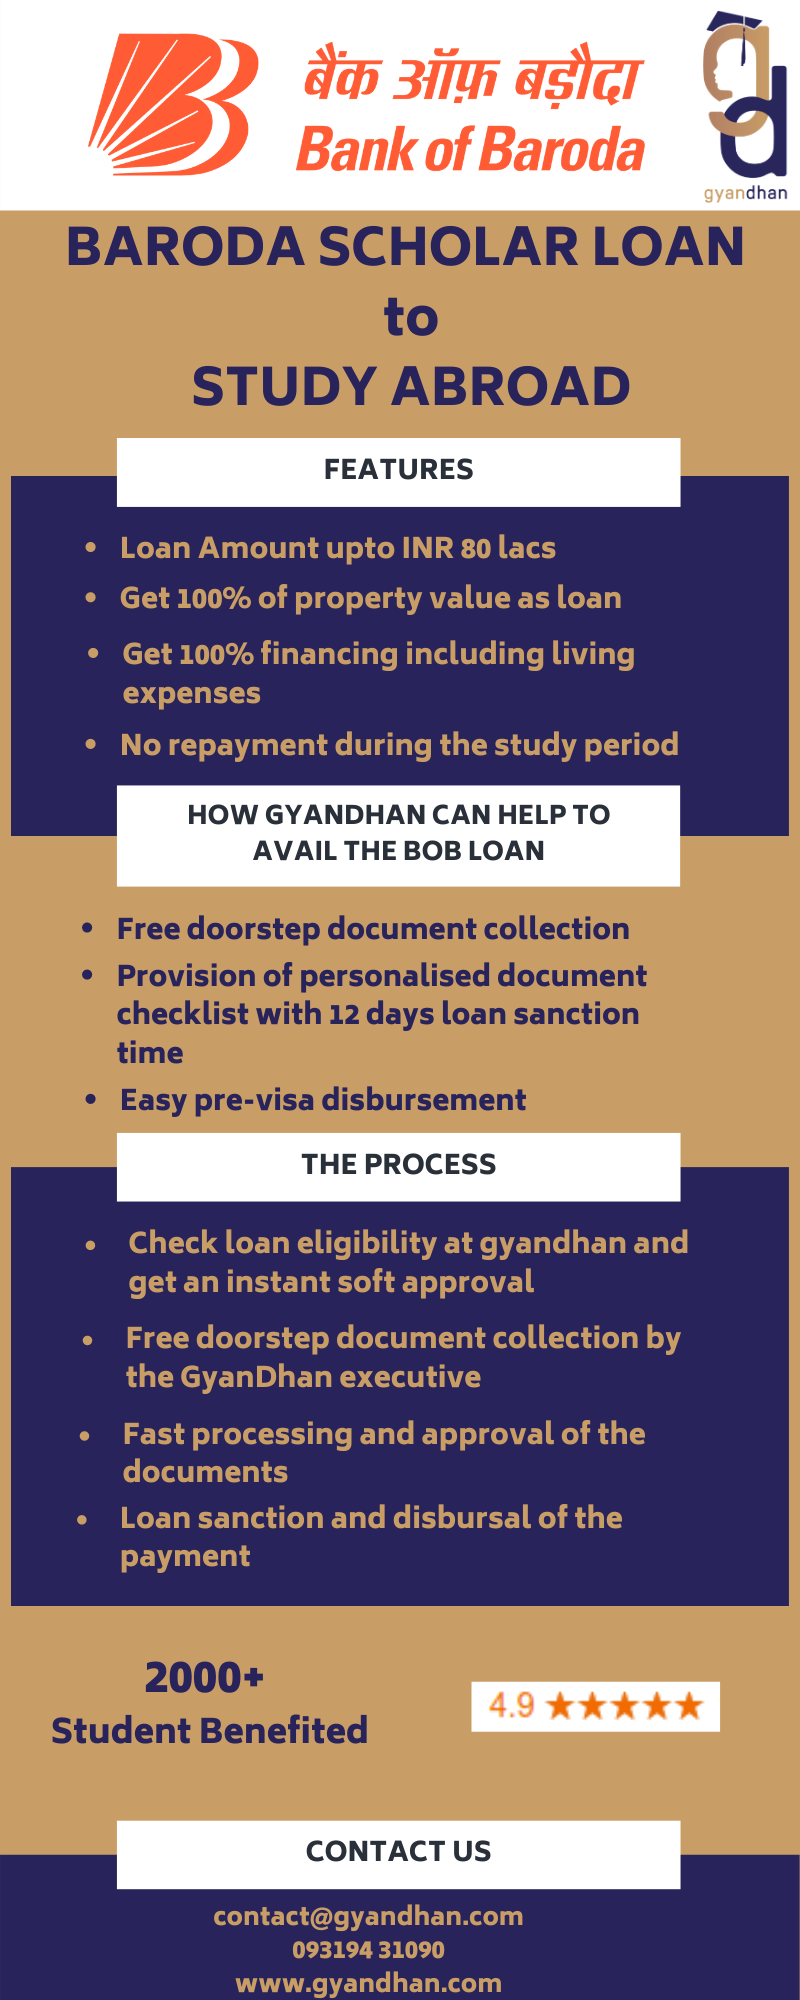 A useful insight into the Bank of Baroda education loan to study abroad.the features and process and GyanDhan's services to avail the loan